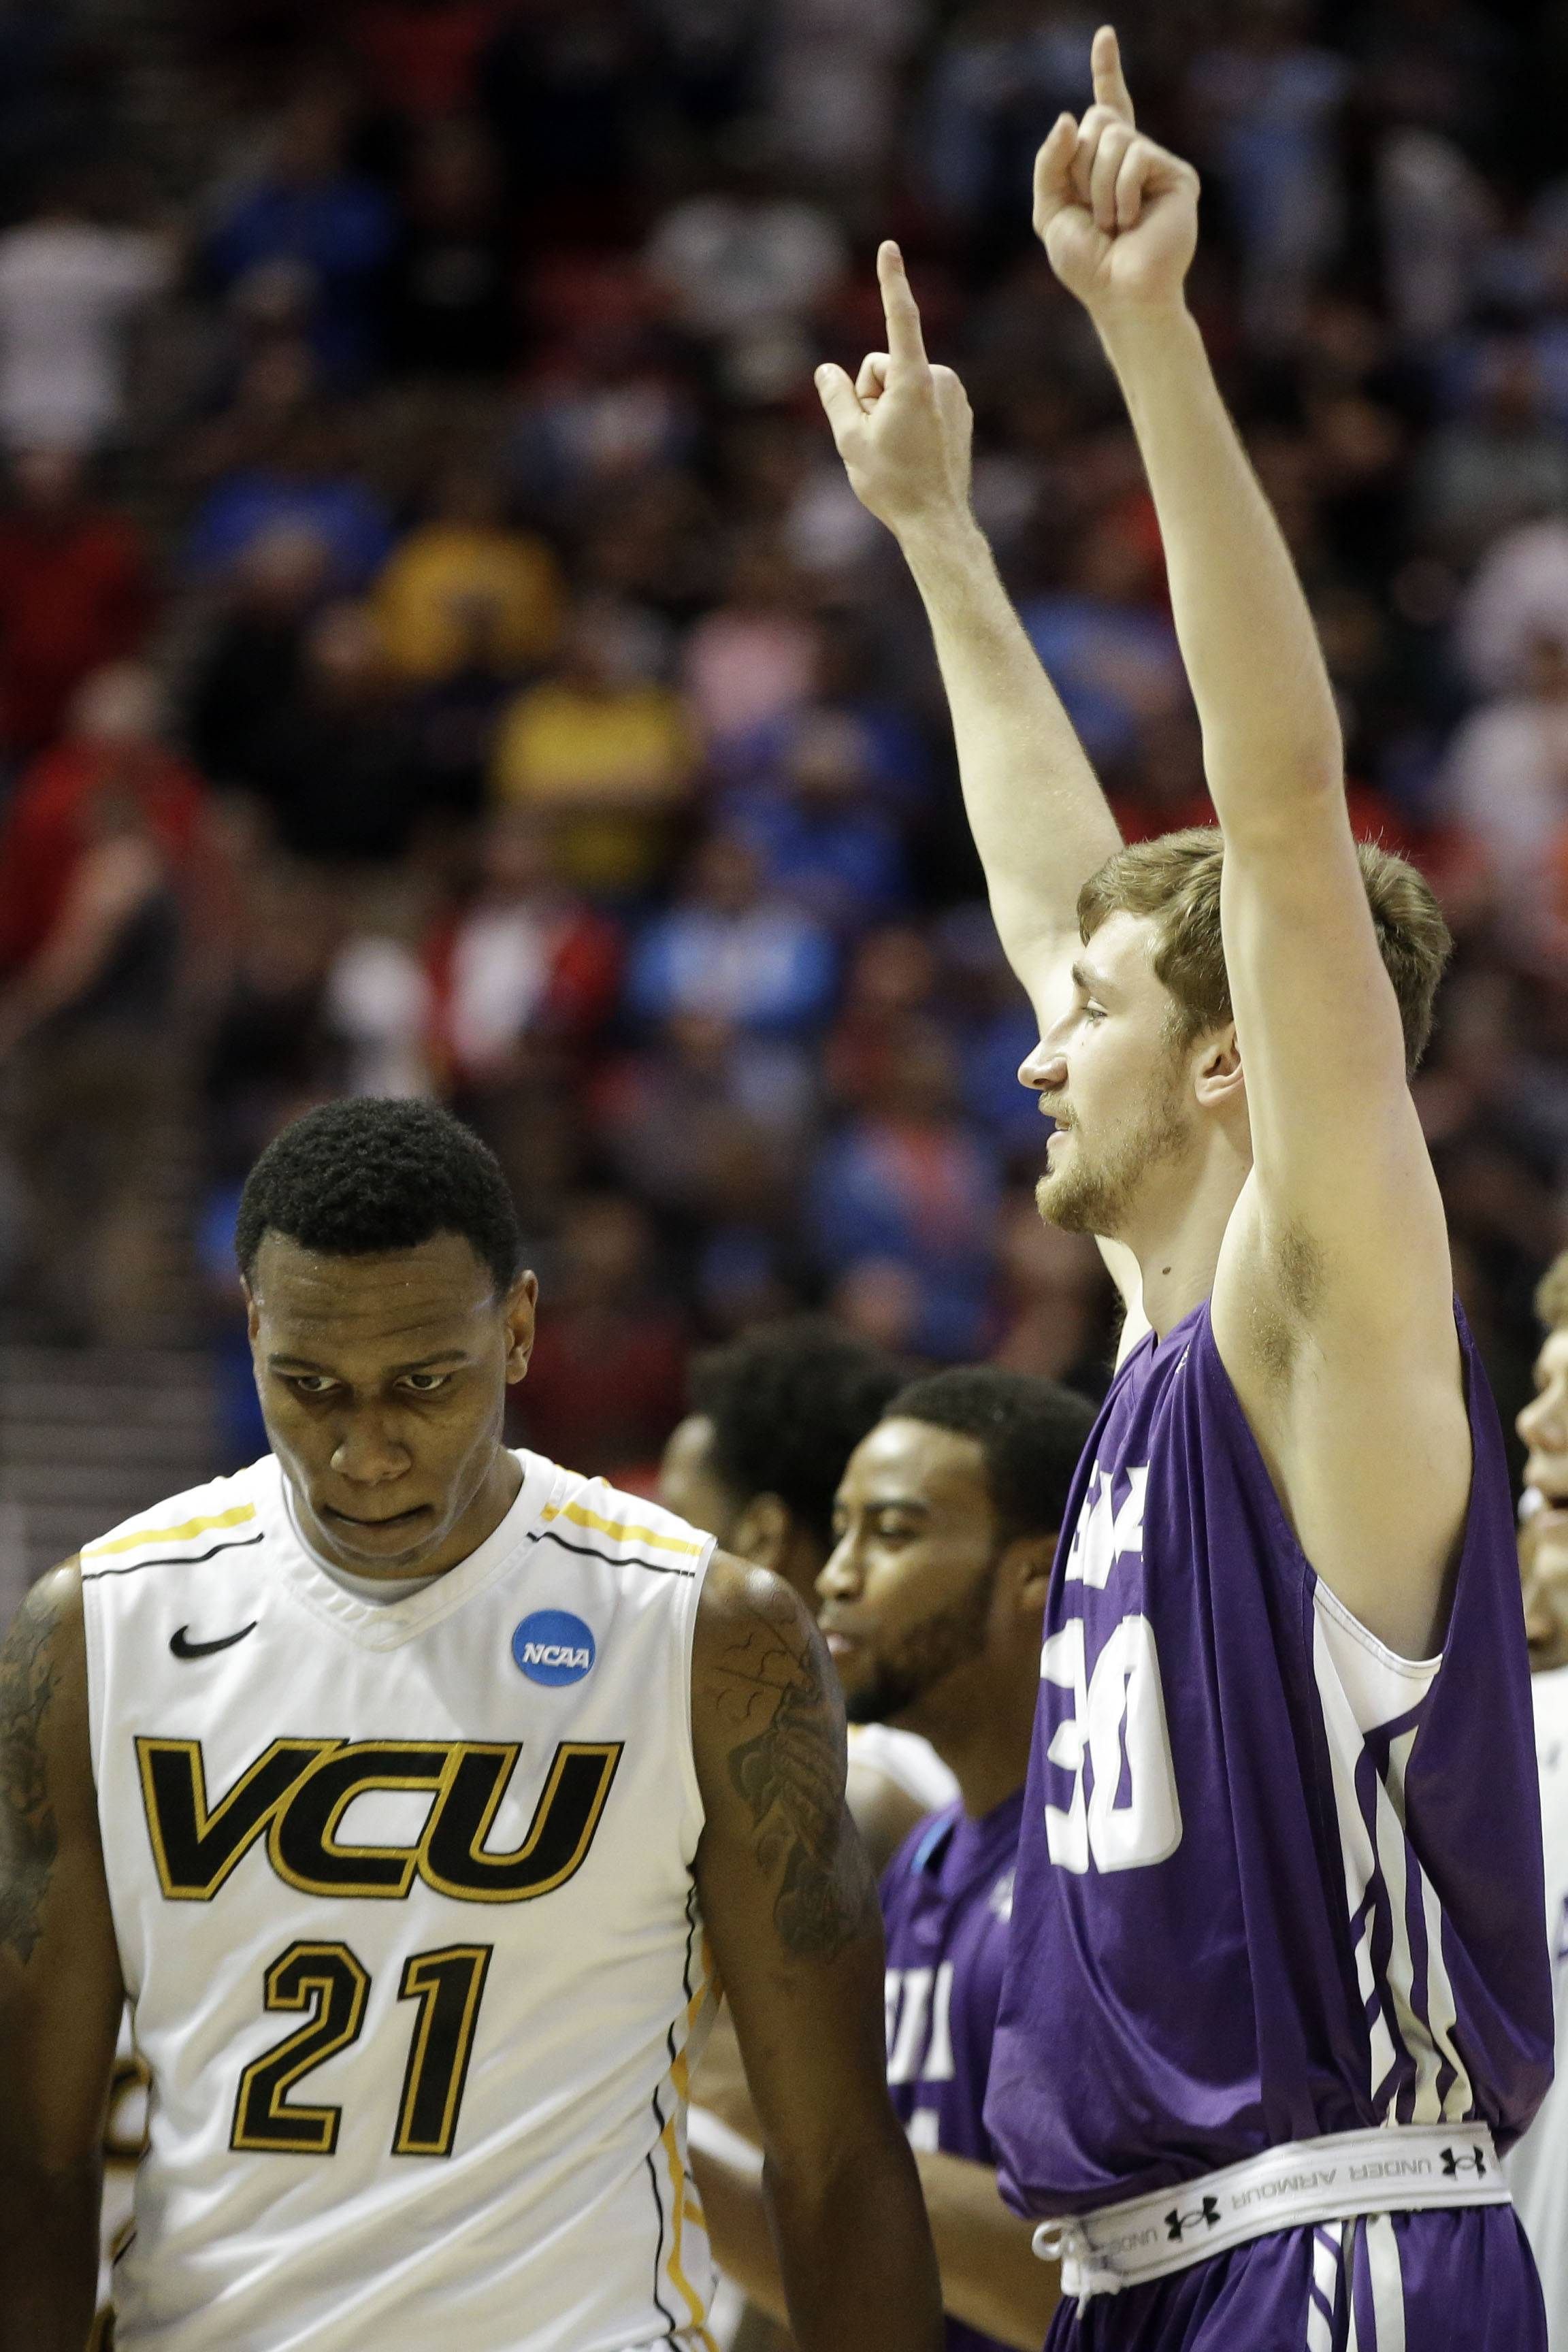 Lumberjacks pull off 77-75 upset of No. 5 VCU